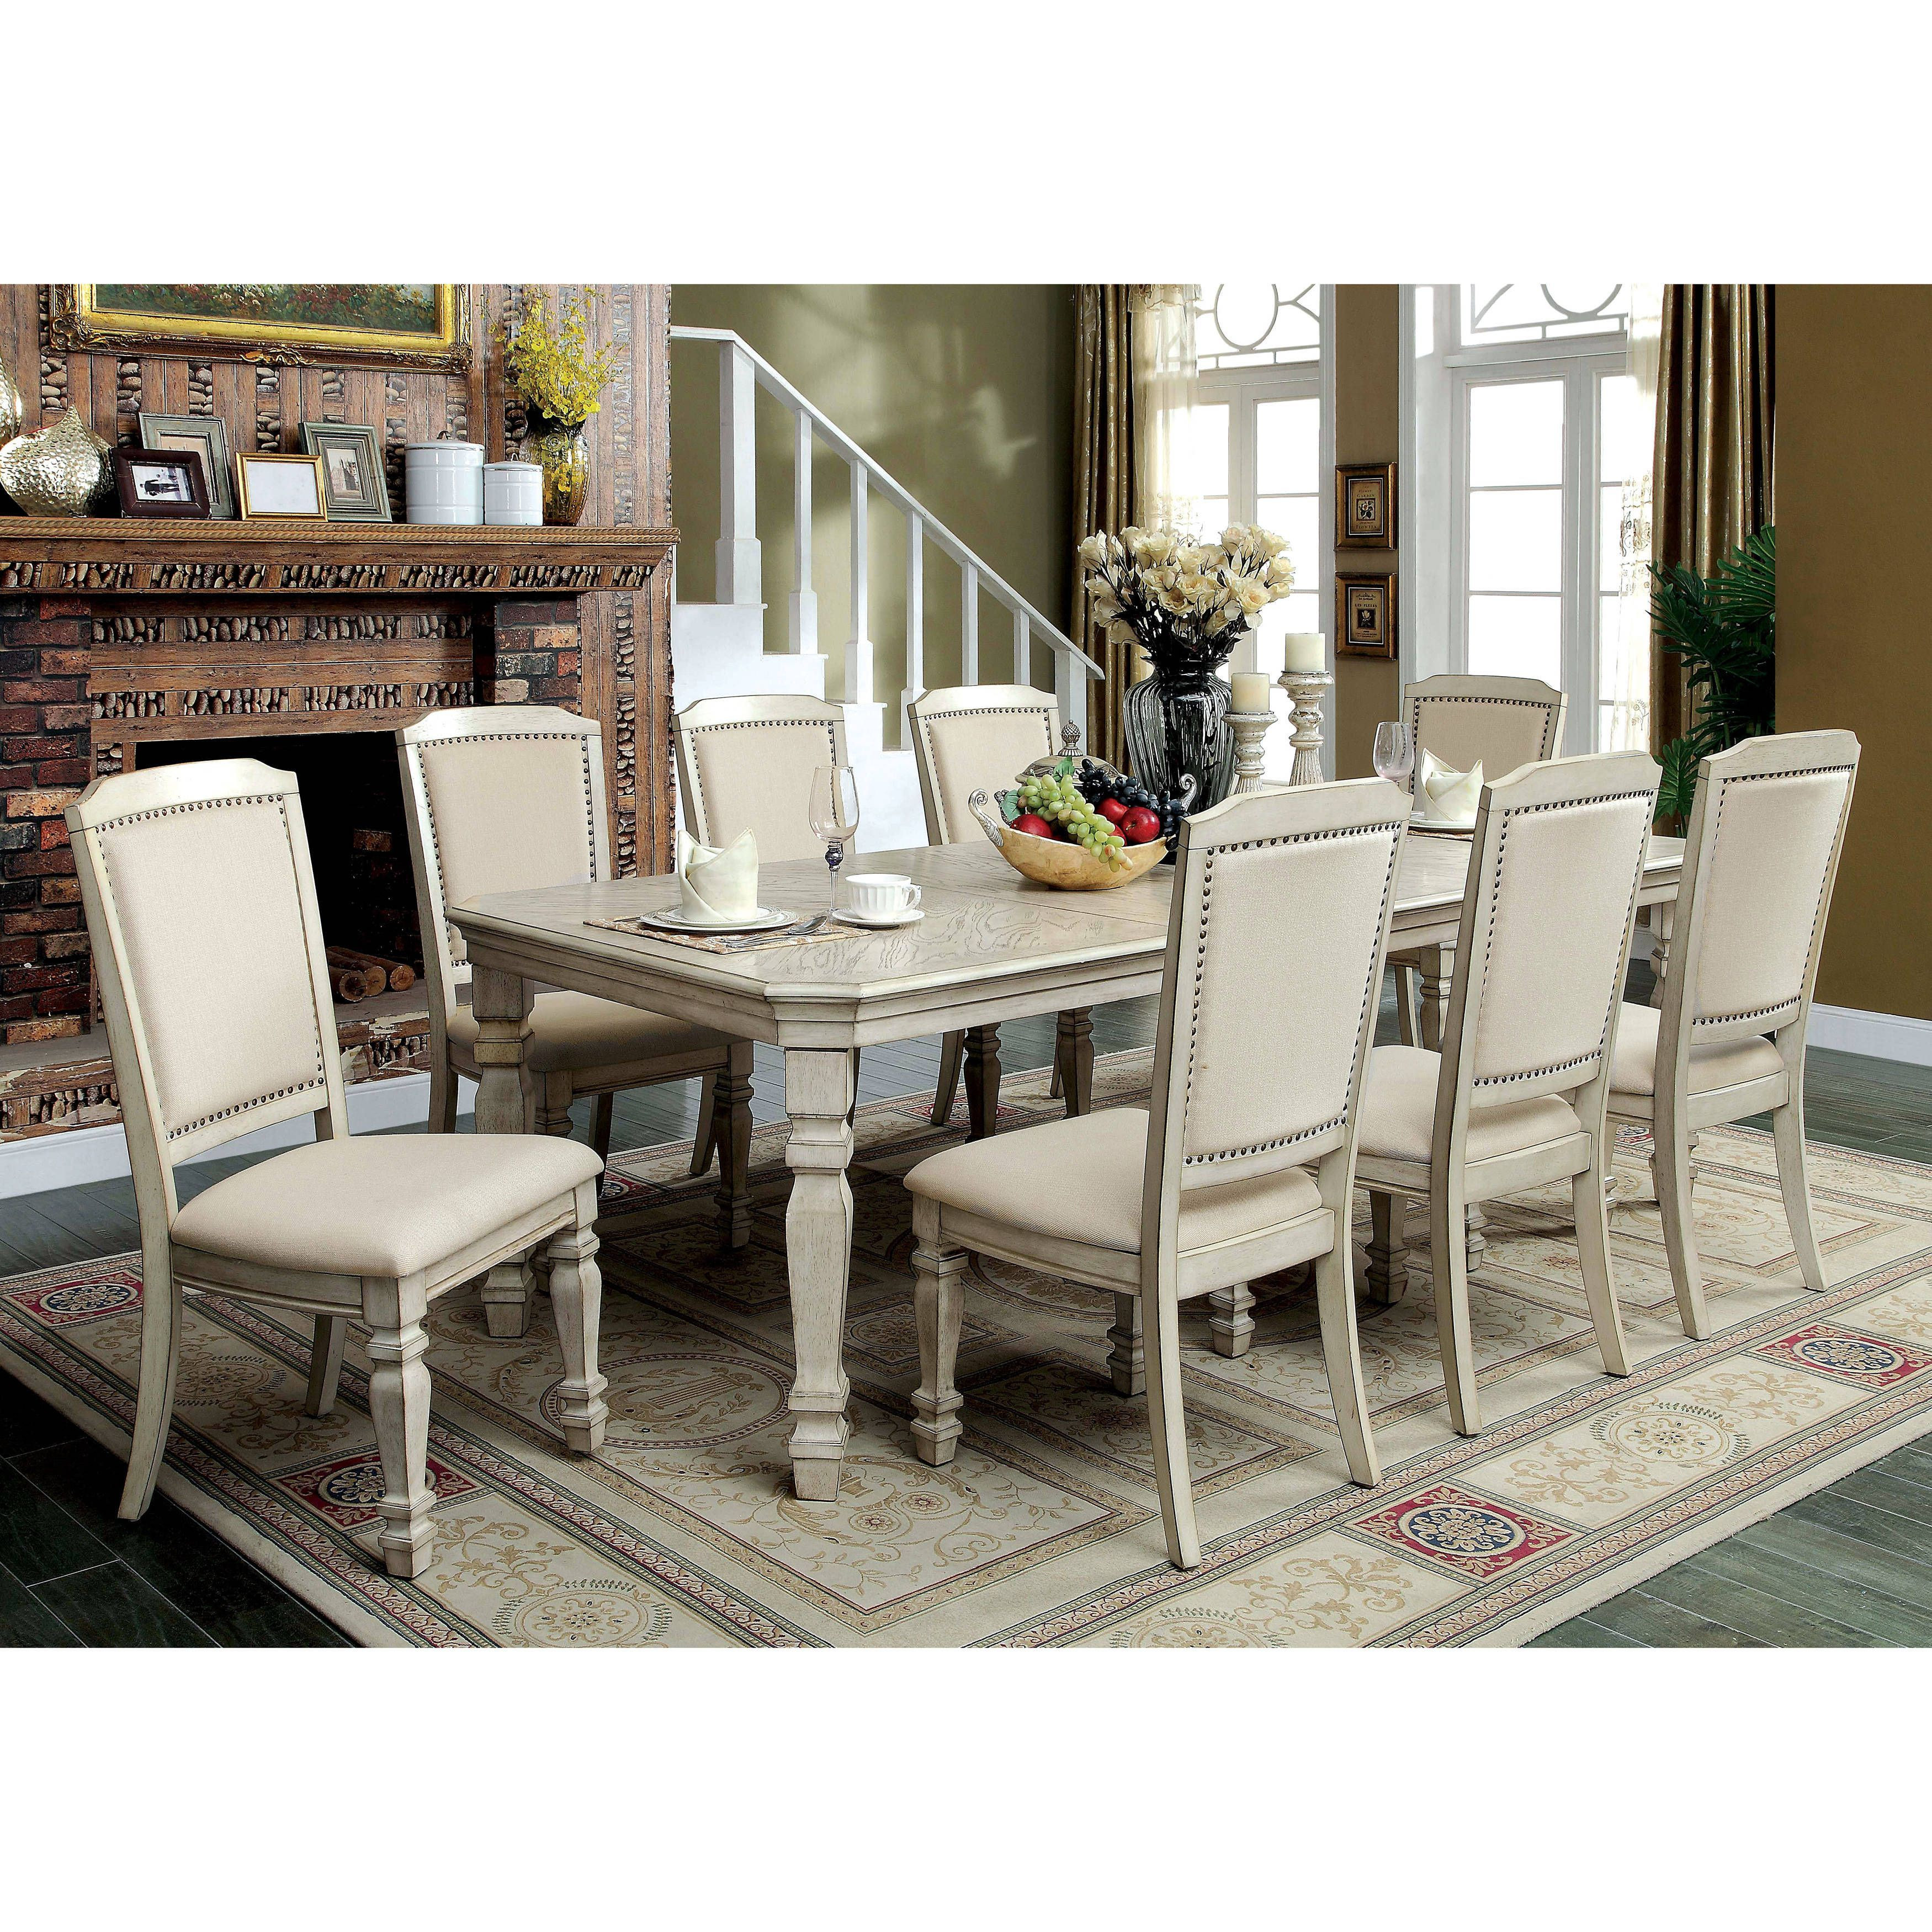 Furniture of America Caplin Traditional 9 piece Antique White Dining